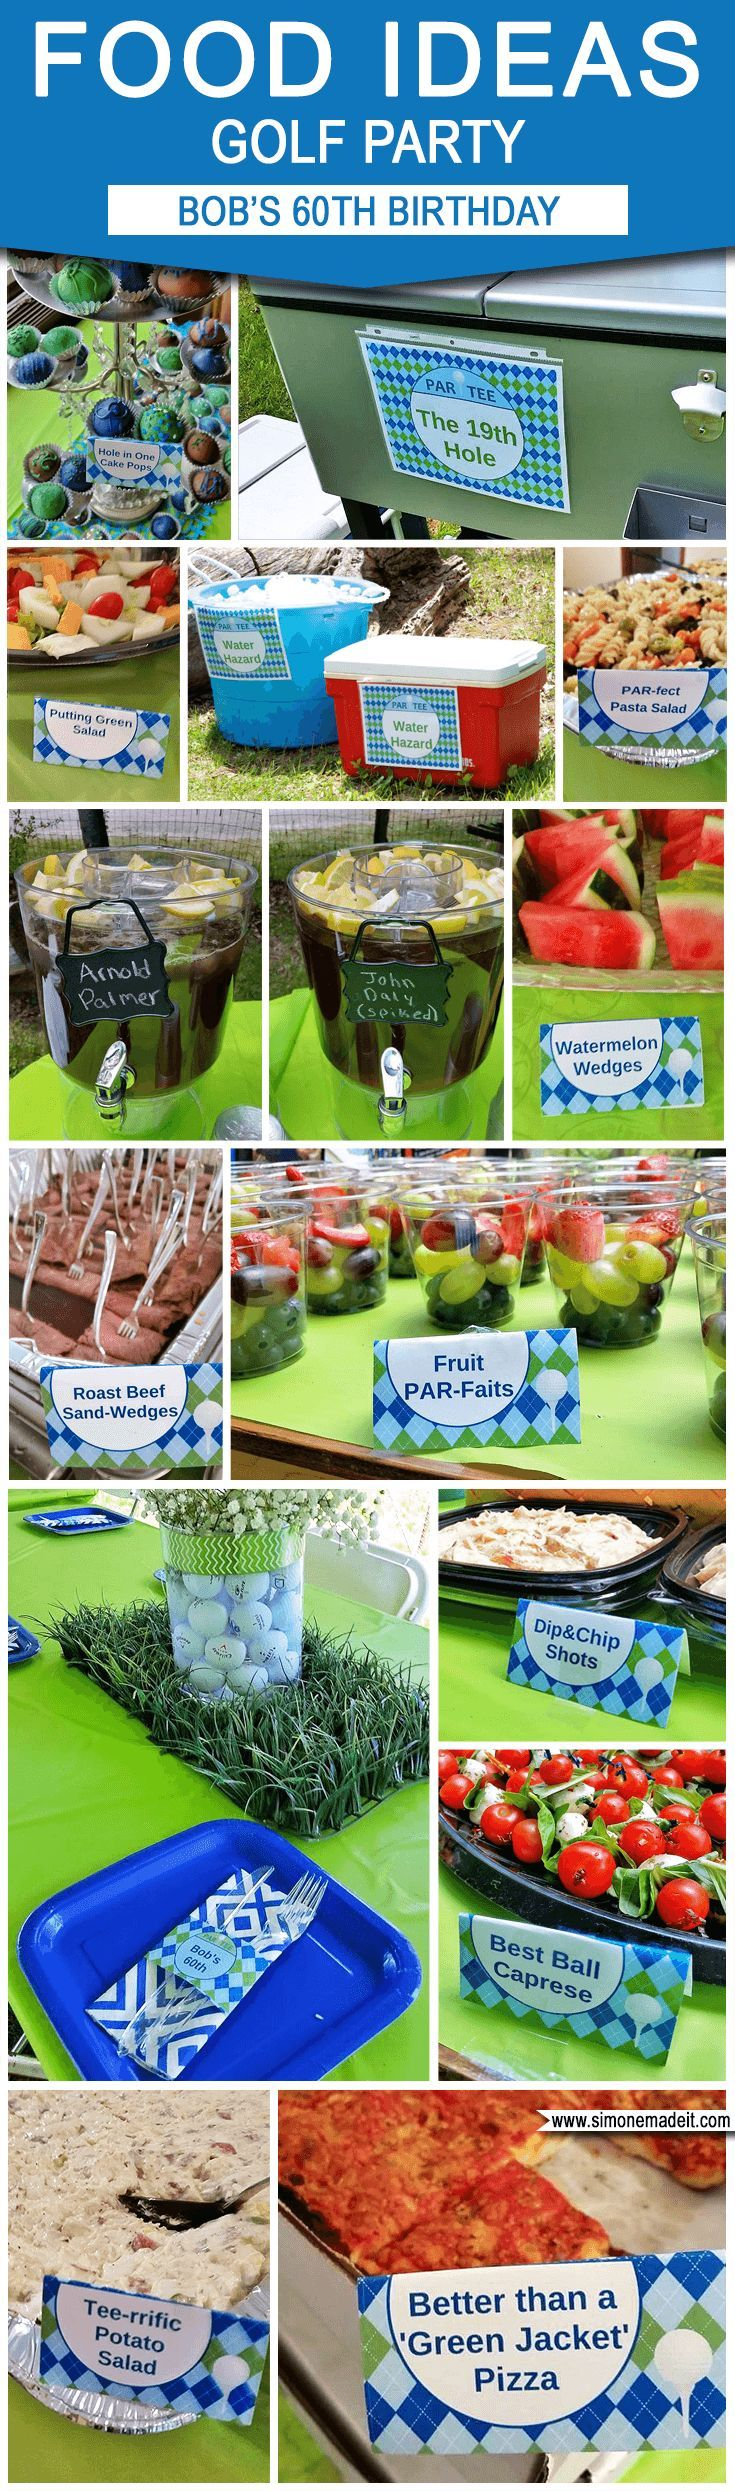 Golf Party Food Ideas for Birthday Golf Par-Tees! Find more golf ideas, quotes, tips, and lessons at #lorisgolfshoppe